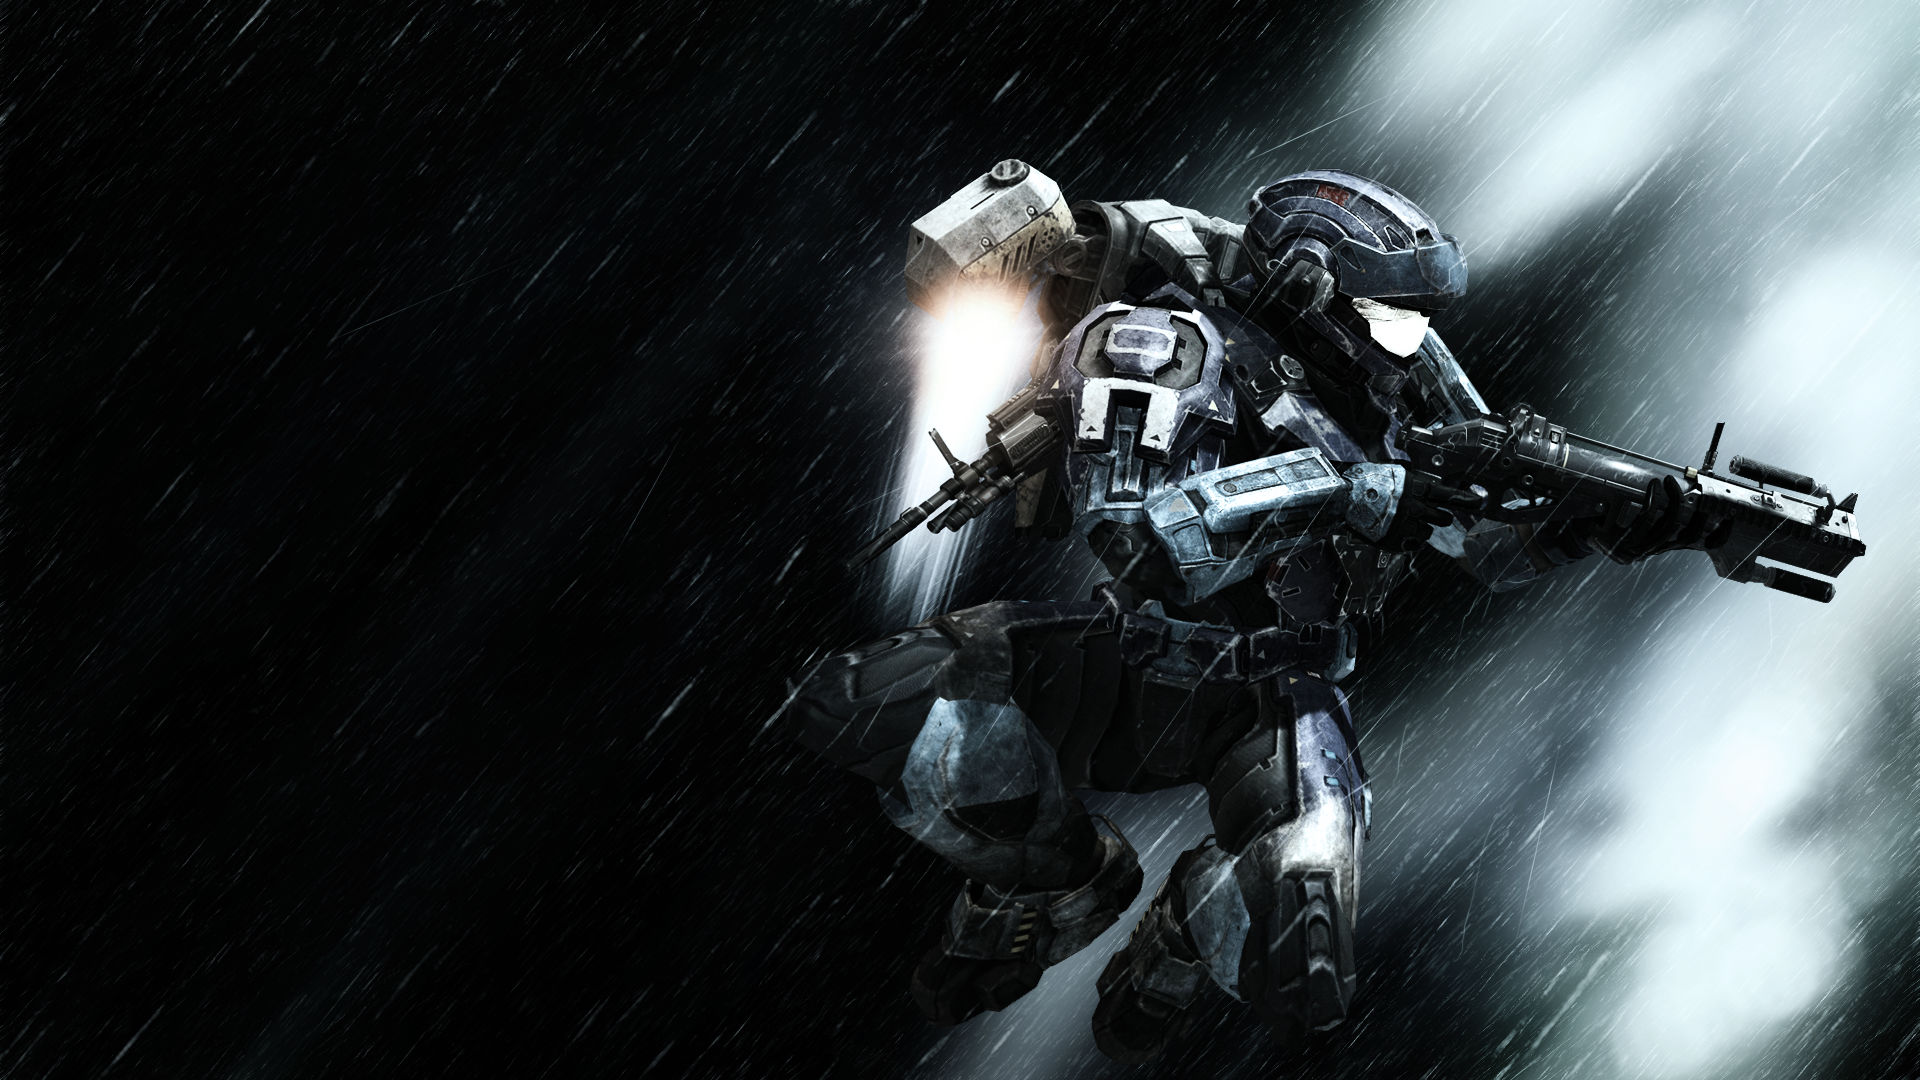 Halo Reach Hd Wallpaper Background Image 1920x1080 Id 323343